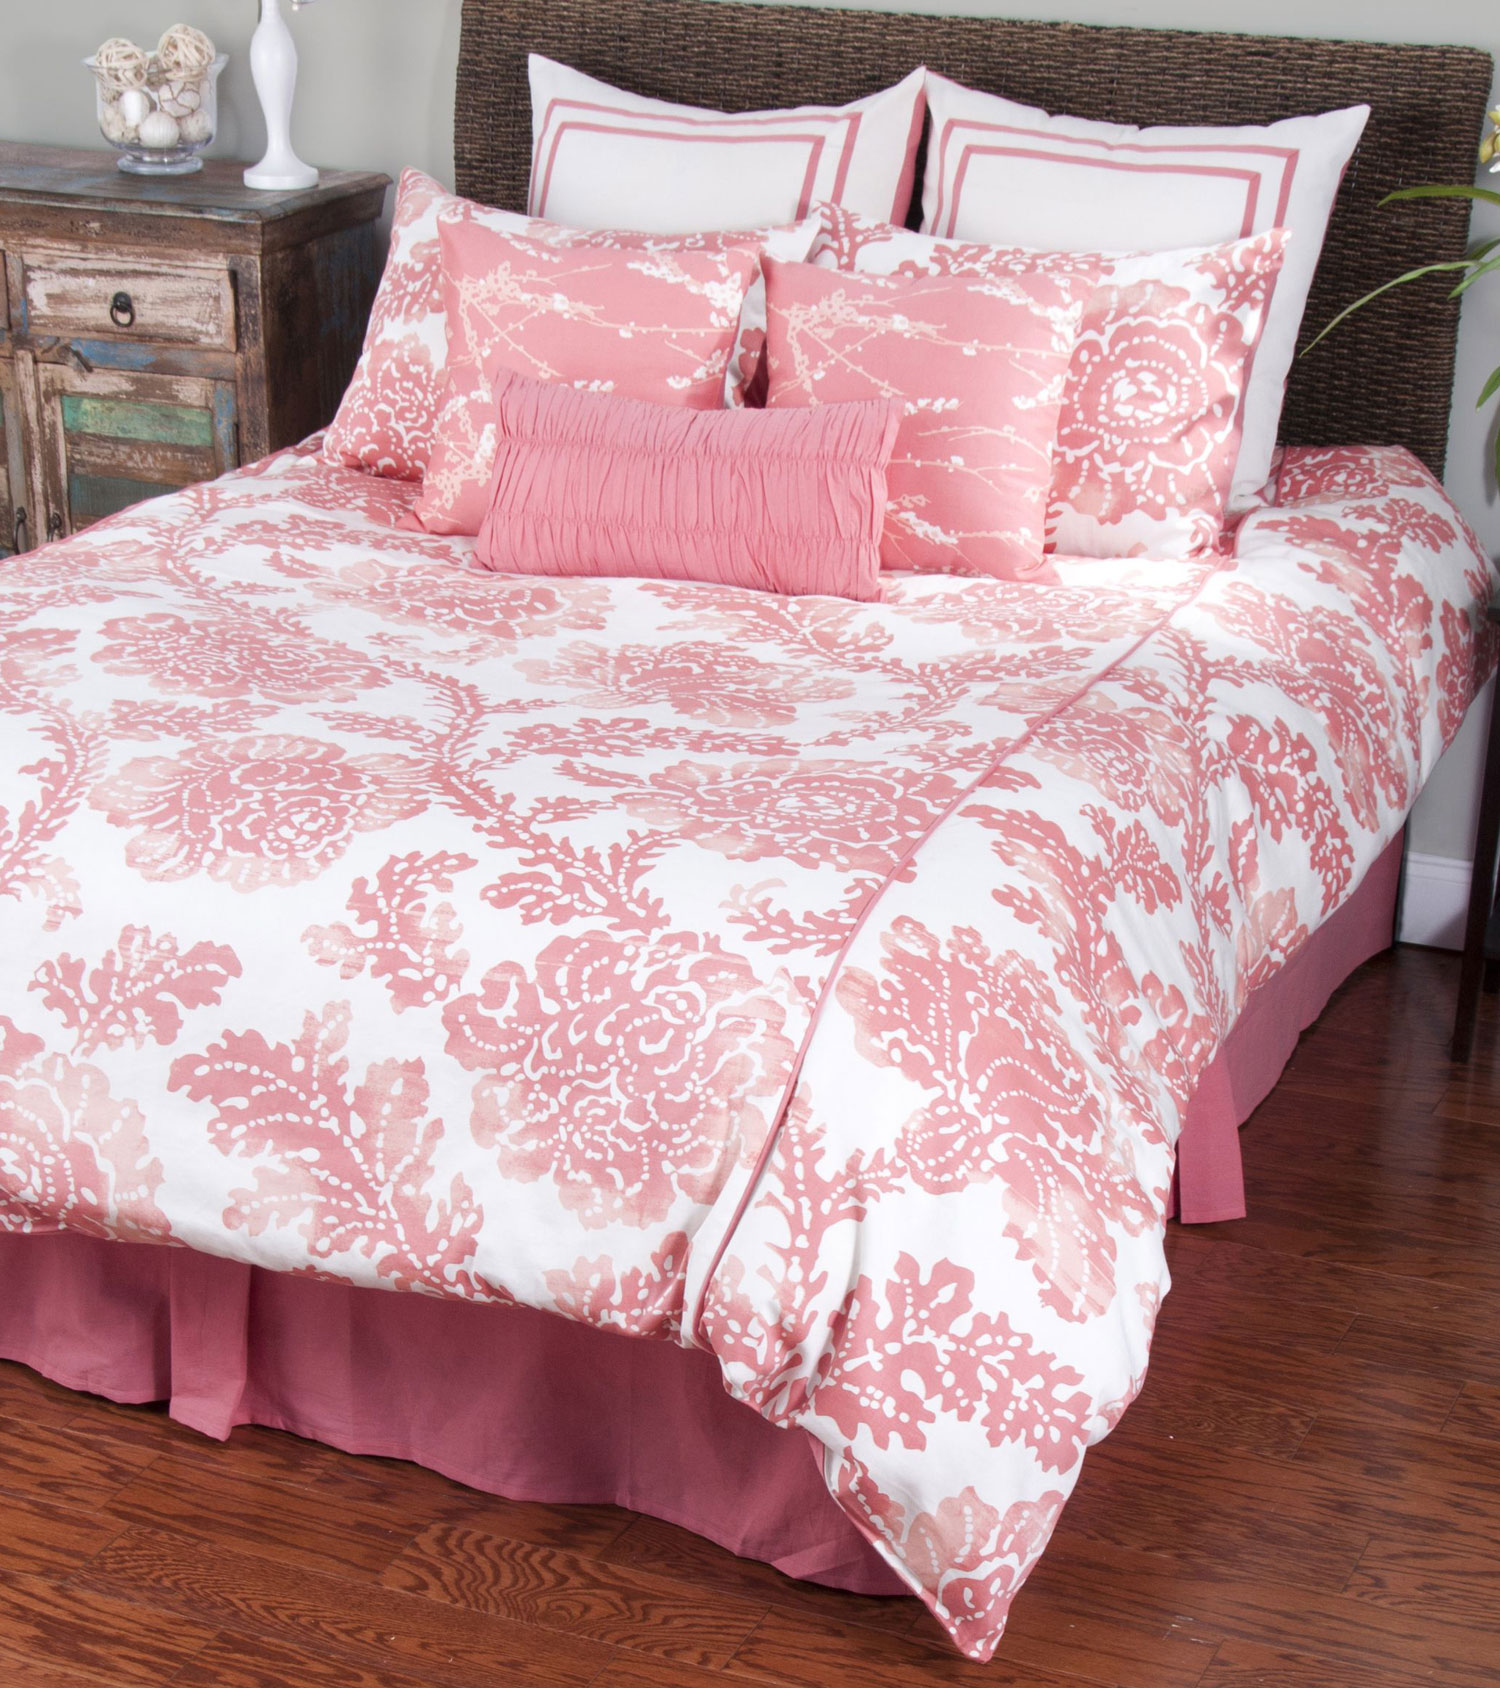 Marissa By Rizzy Home Bedding Beddingsuperstore Com